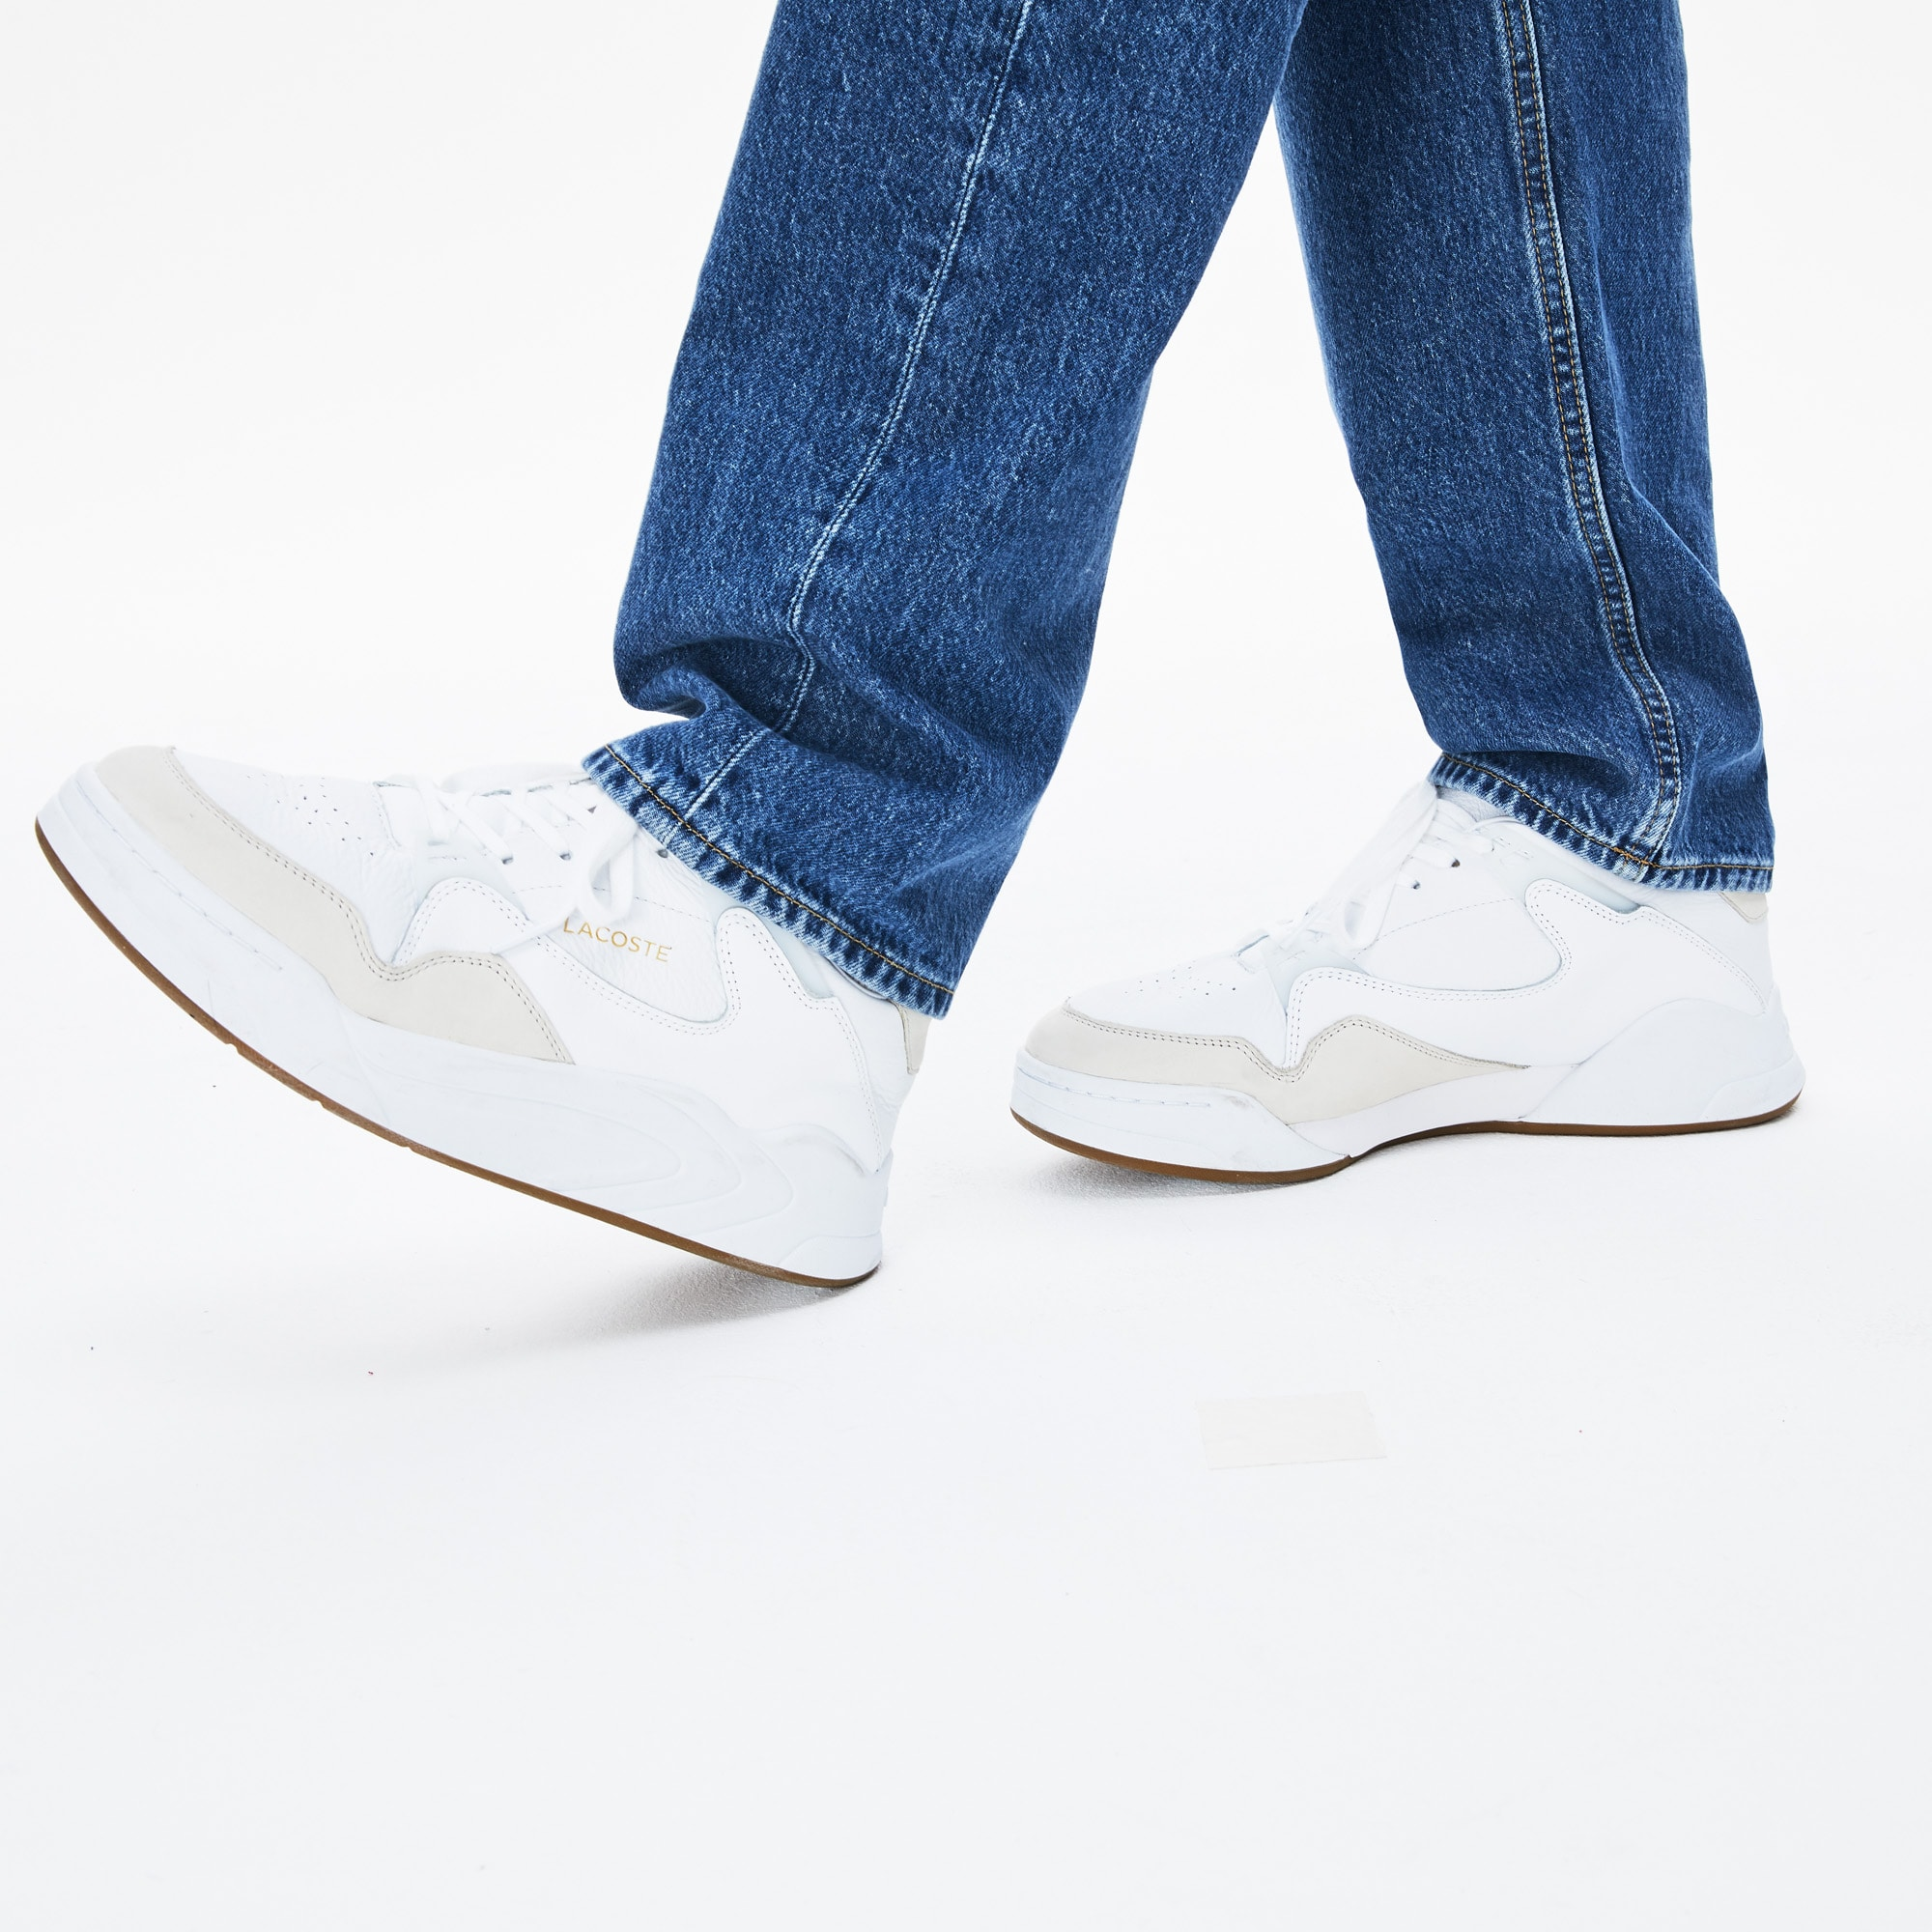 Lacoste Lacoste Shoes For Shoes MenSneakersTrainersBoots 3jAL4Rcq5